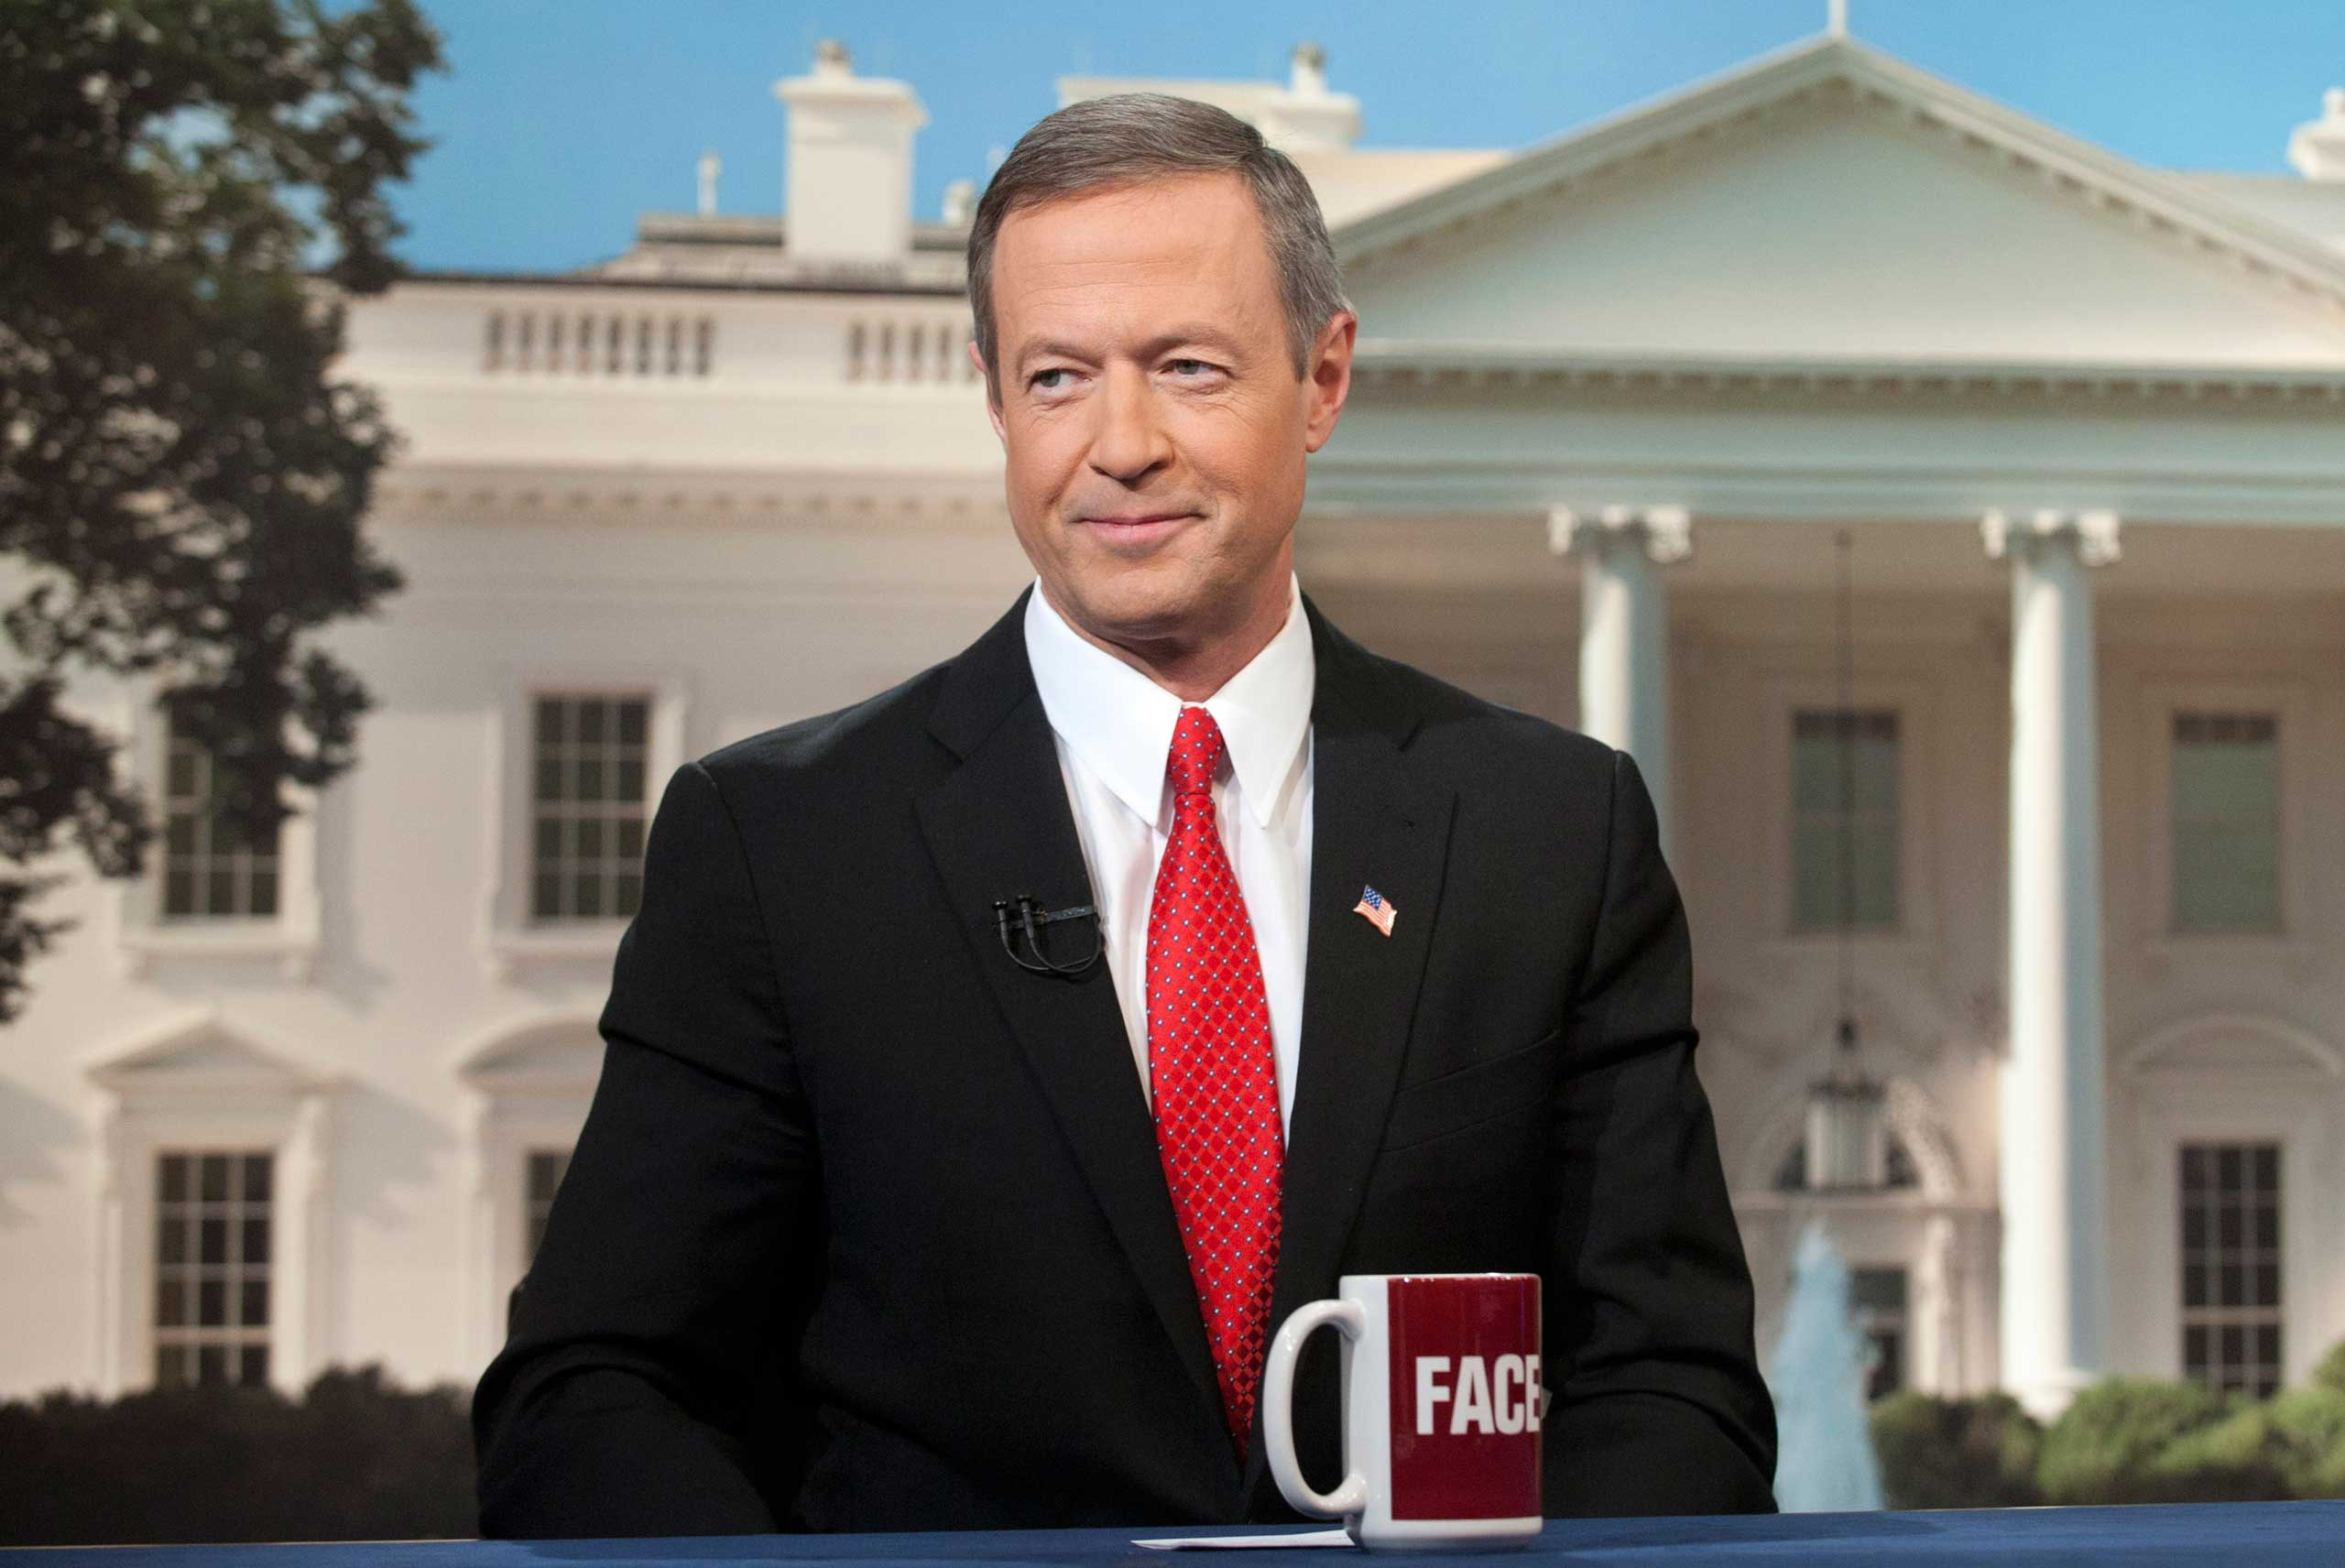 <b>Martin O'Malley</b> Maryland Governor Martin OíMalley ponders decorating ideas in front of his possible future home on CBS's  Face the Nation on Feb. 23, 2014.